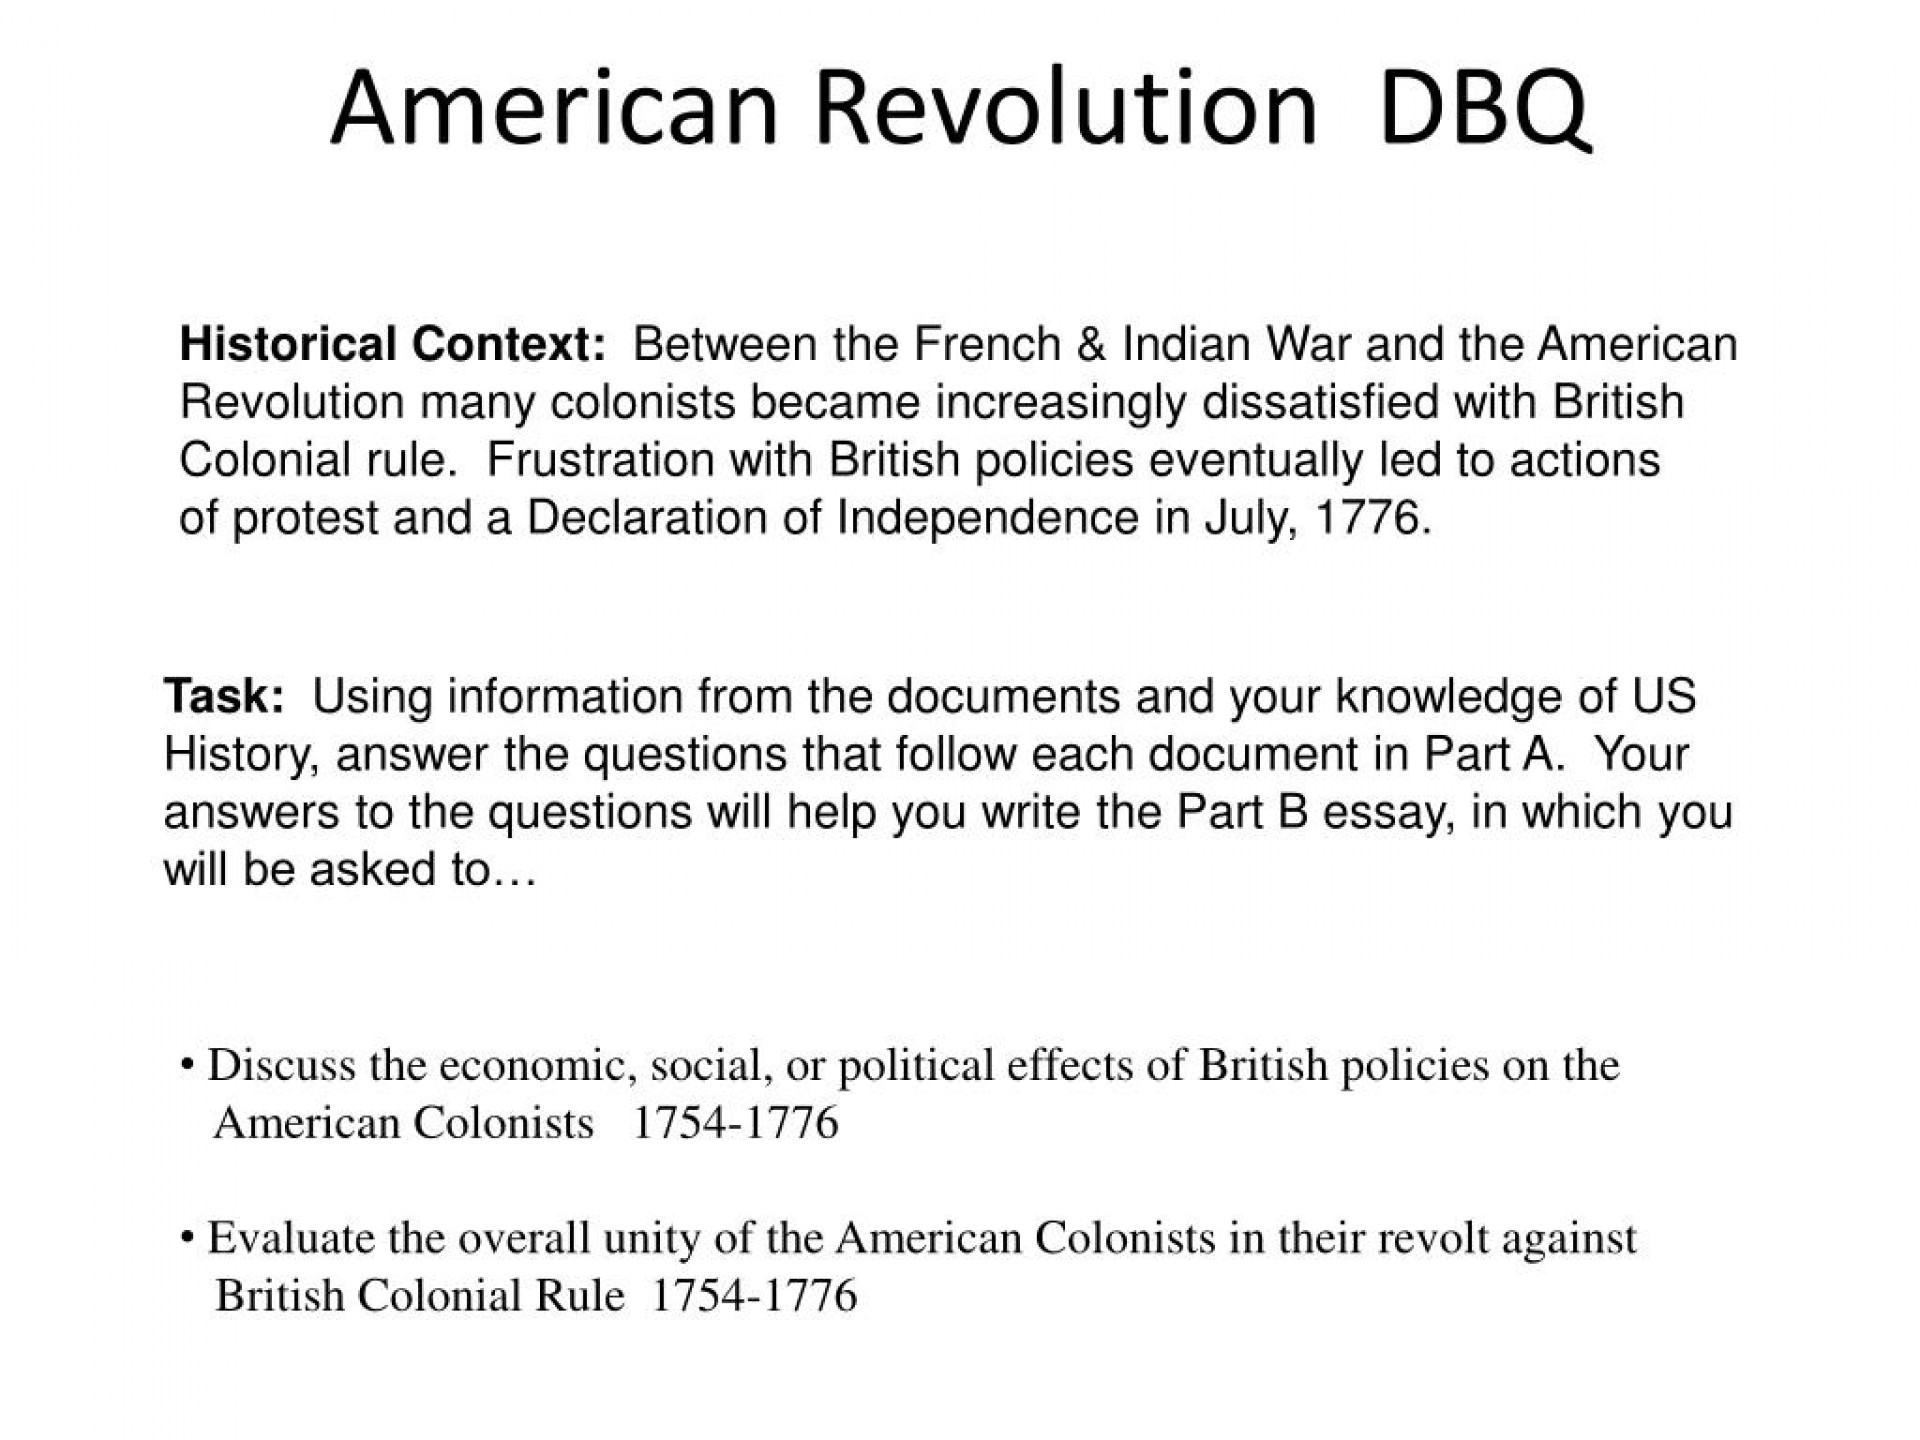 014 American Revolution Essay Example Dbq Fascinating Causes Of The Conclusion Outline Introduction 1920